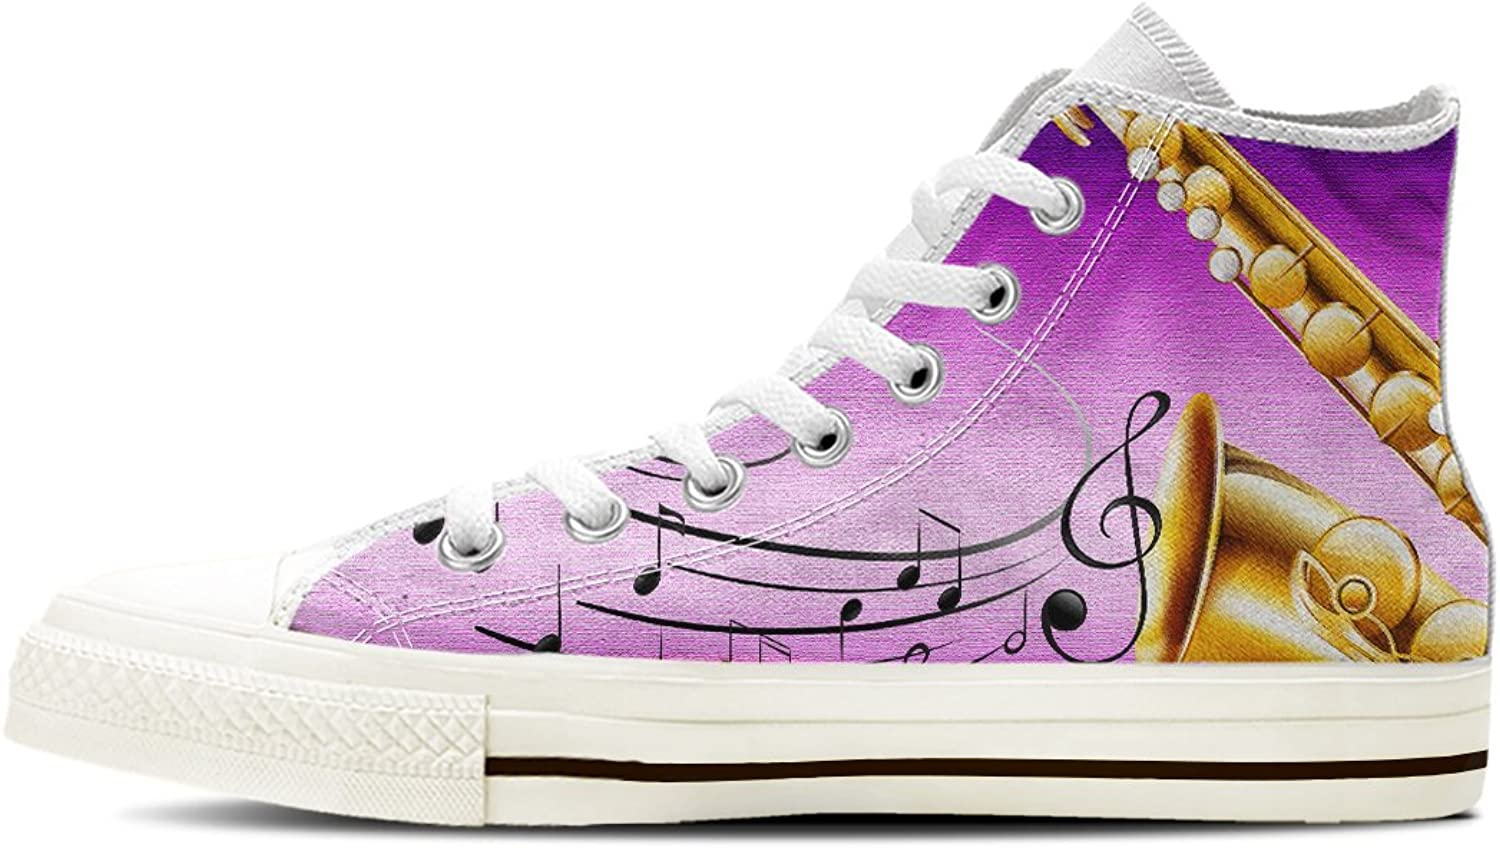 Gnarly Tees Women's Saxophone shoes High Top